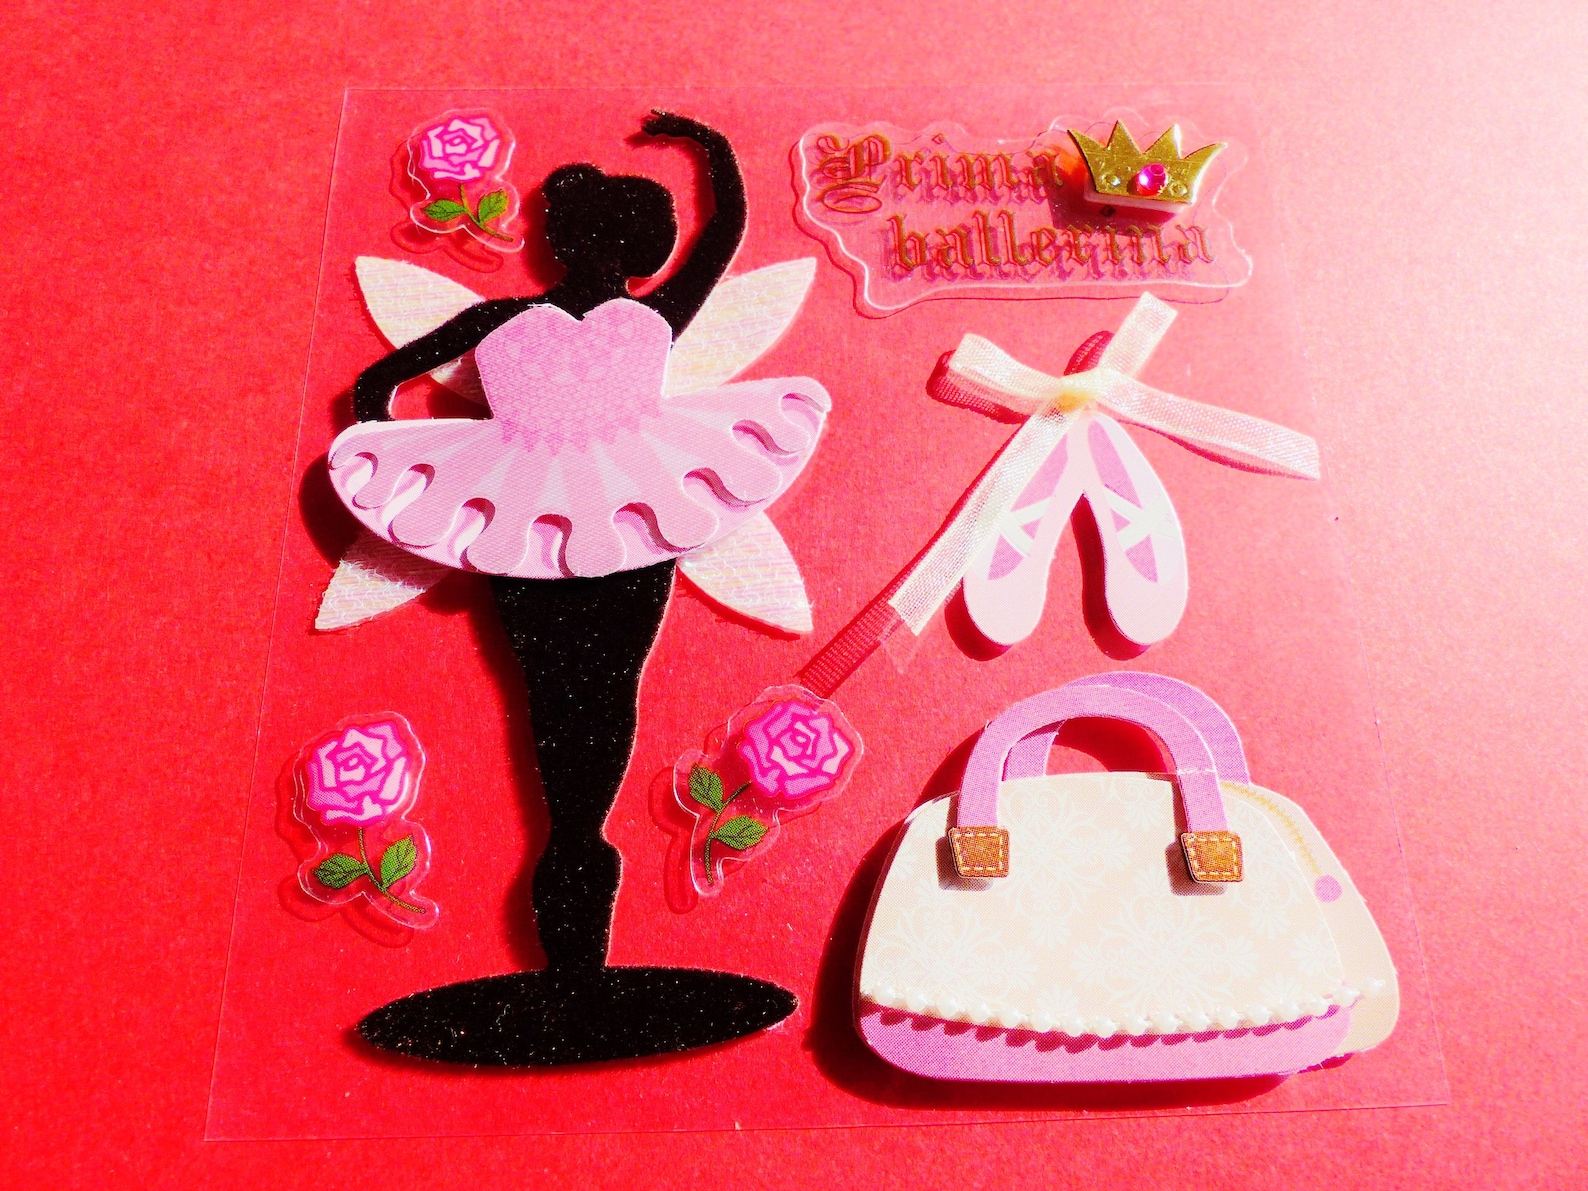 stickers 3d ballerina prima ballerina tutu ballet shoe tip paper dance wall decal stickers pearl velvet fabric